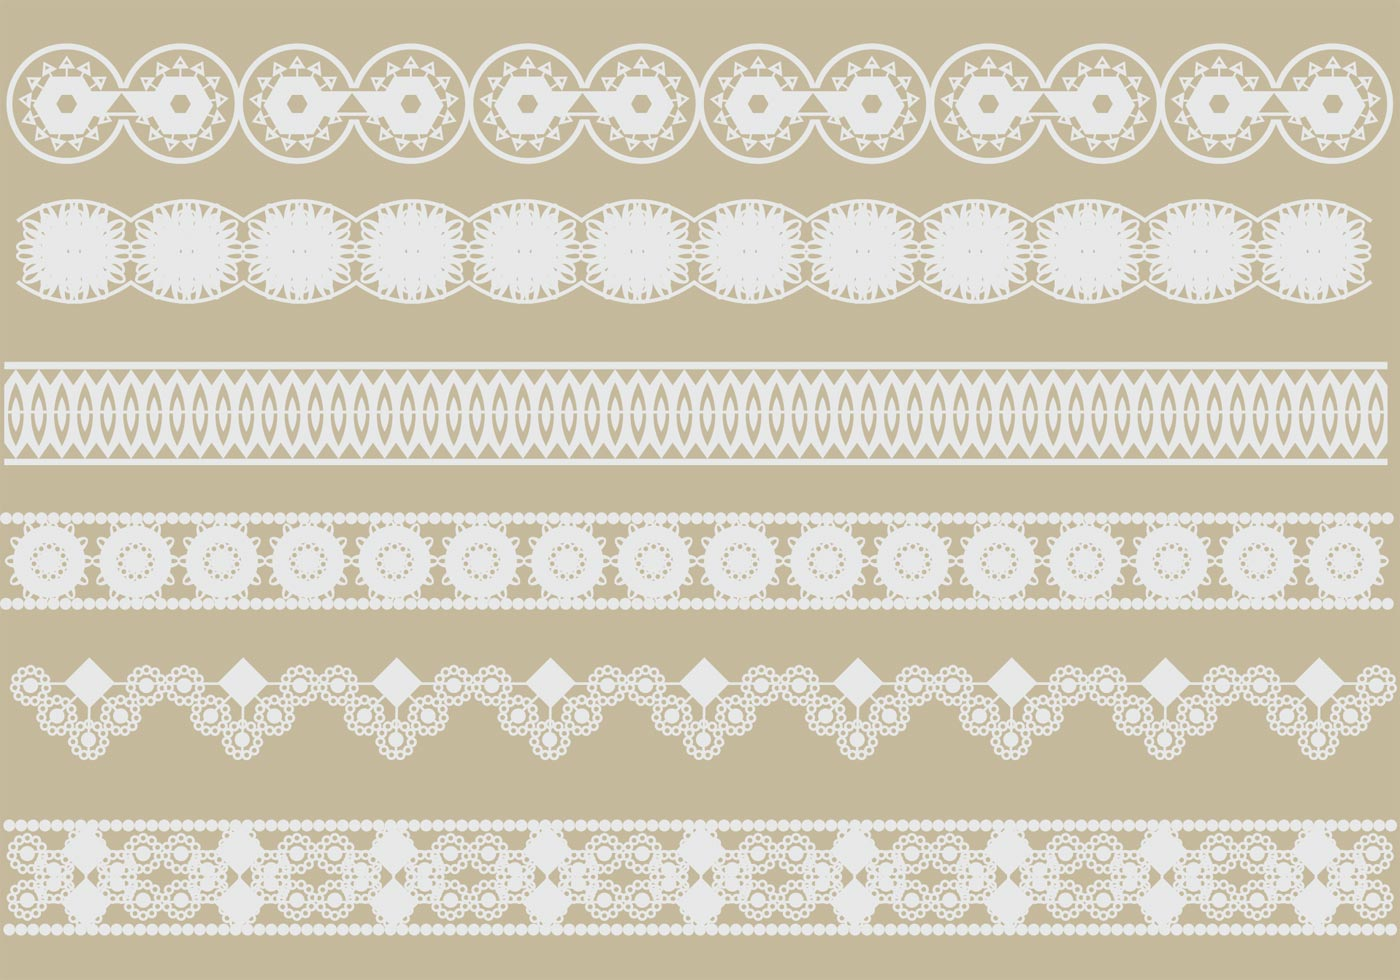 Crochet Lace Vectors - Download Free Vector Art, Stock Graphics ...